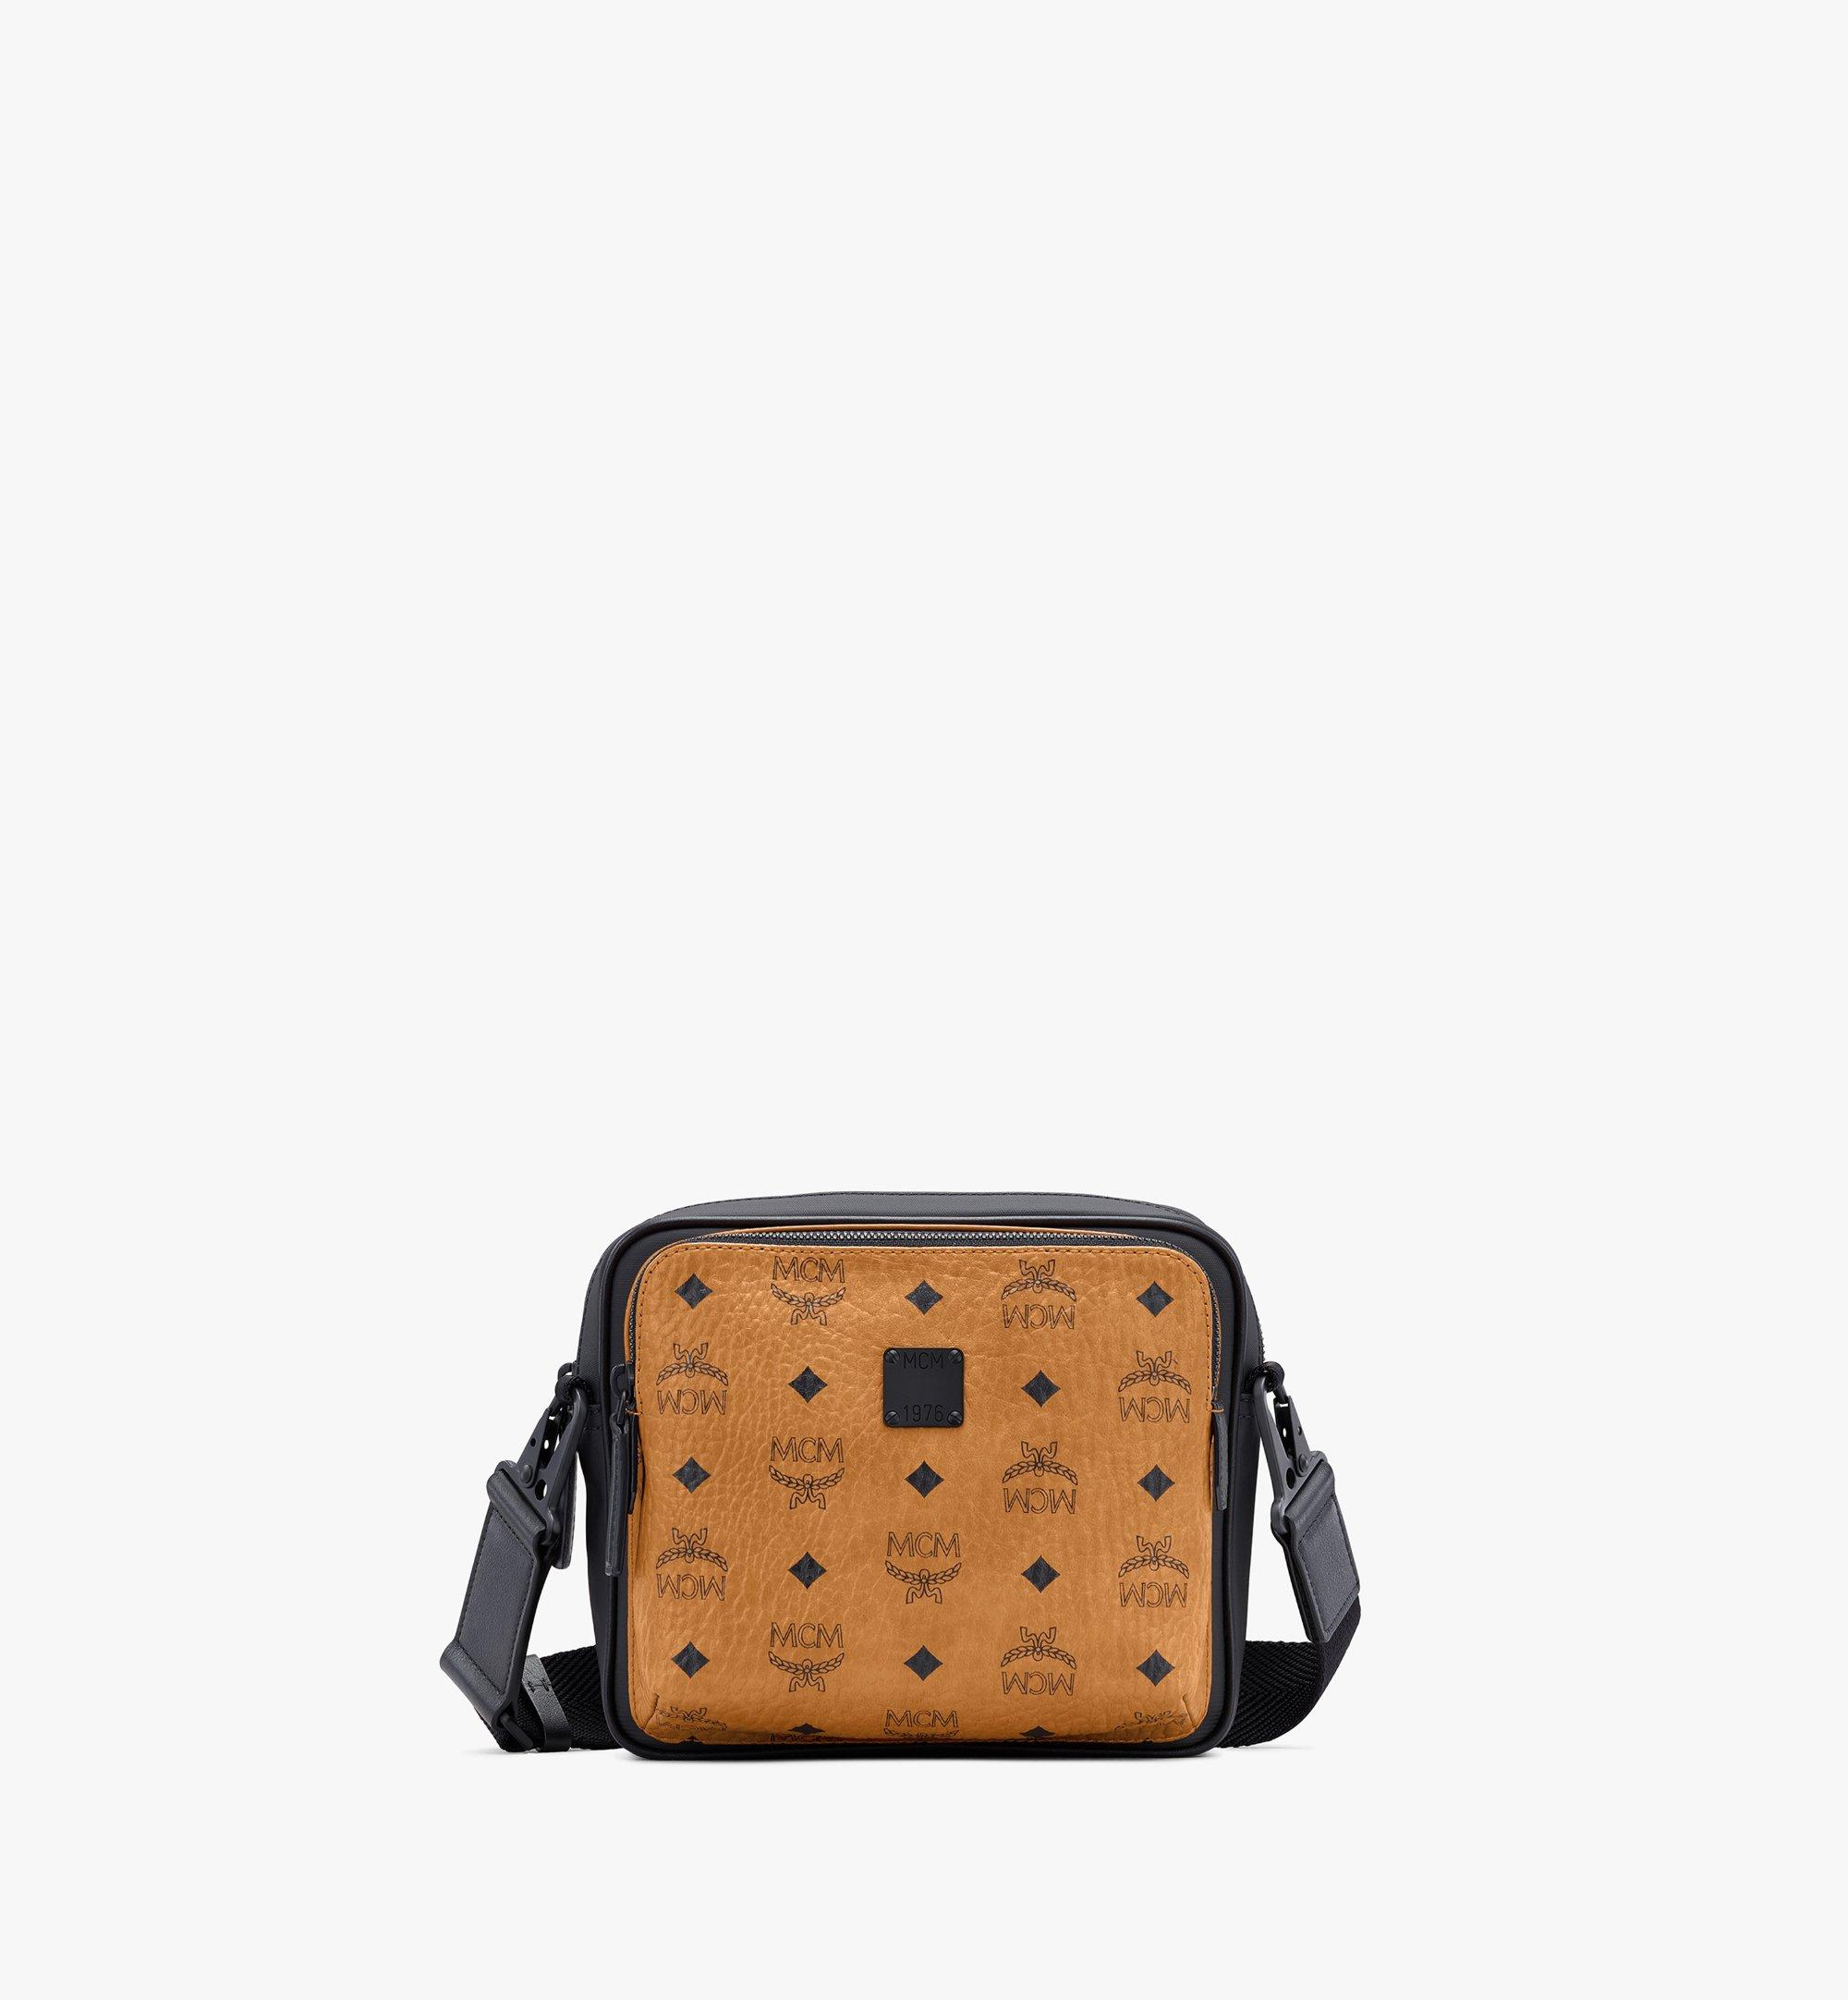 MCM 1976 Square Crossbody in Visetos Cognac MMRASMV03CO001 Alternate View 1